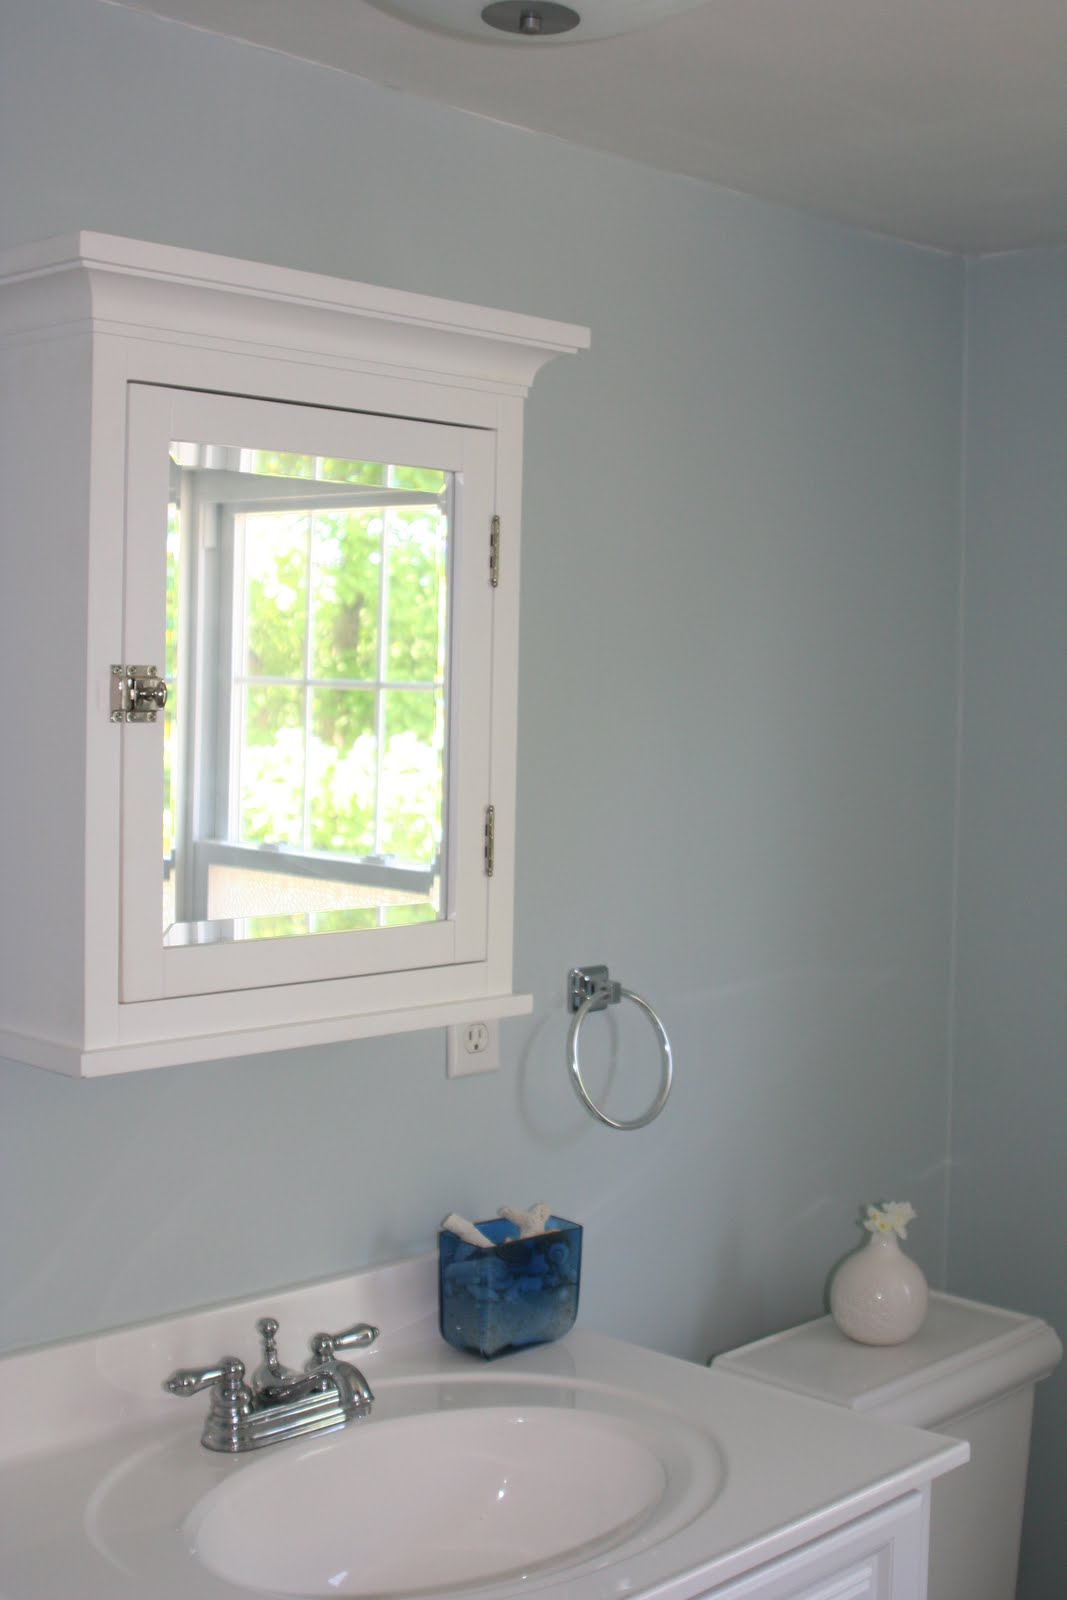 ERIN WALSH DESIGN: Bathroom Painting Done